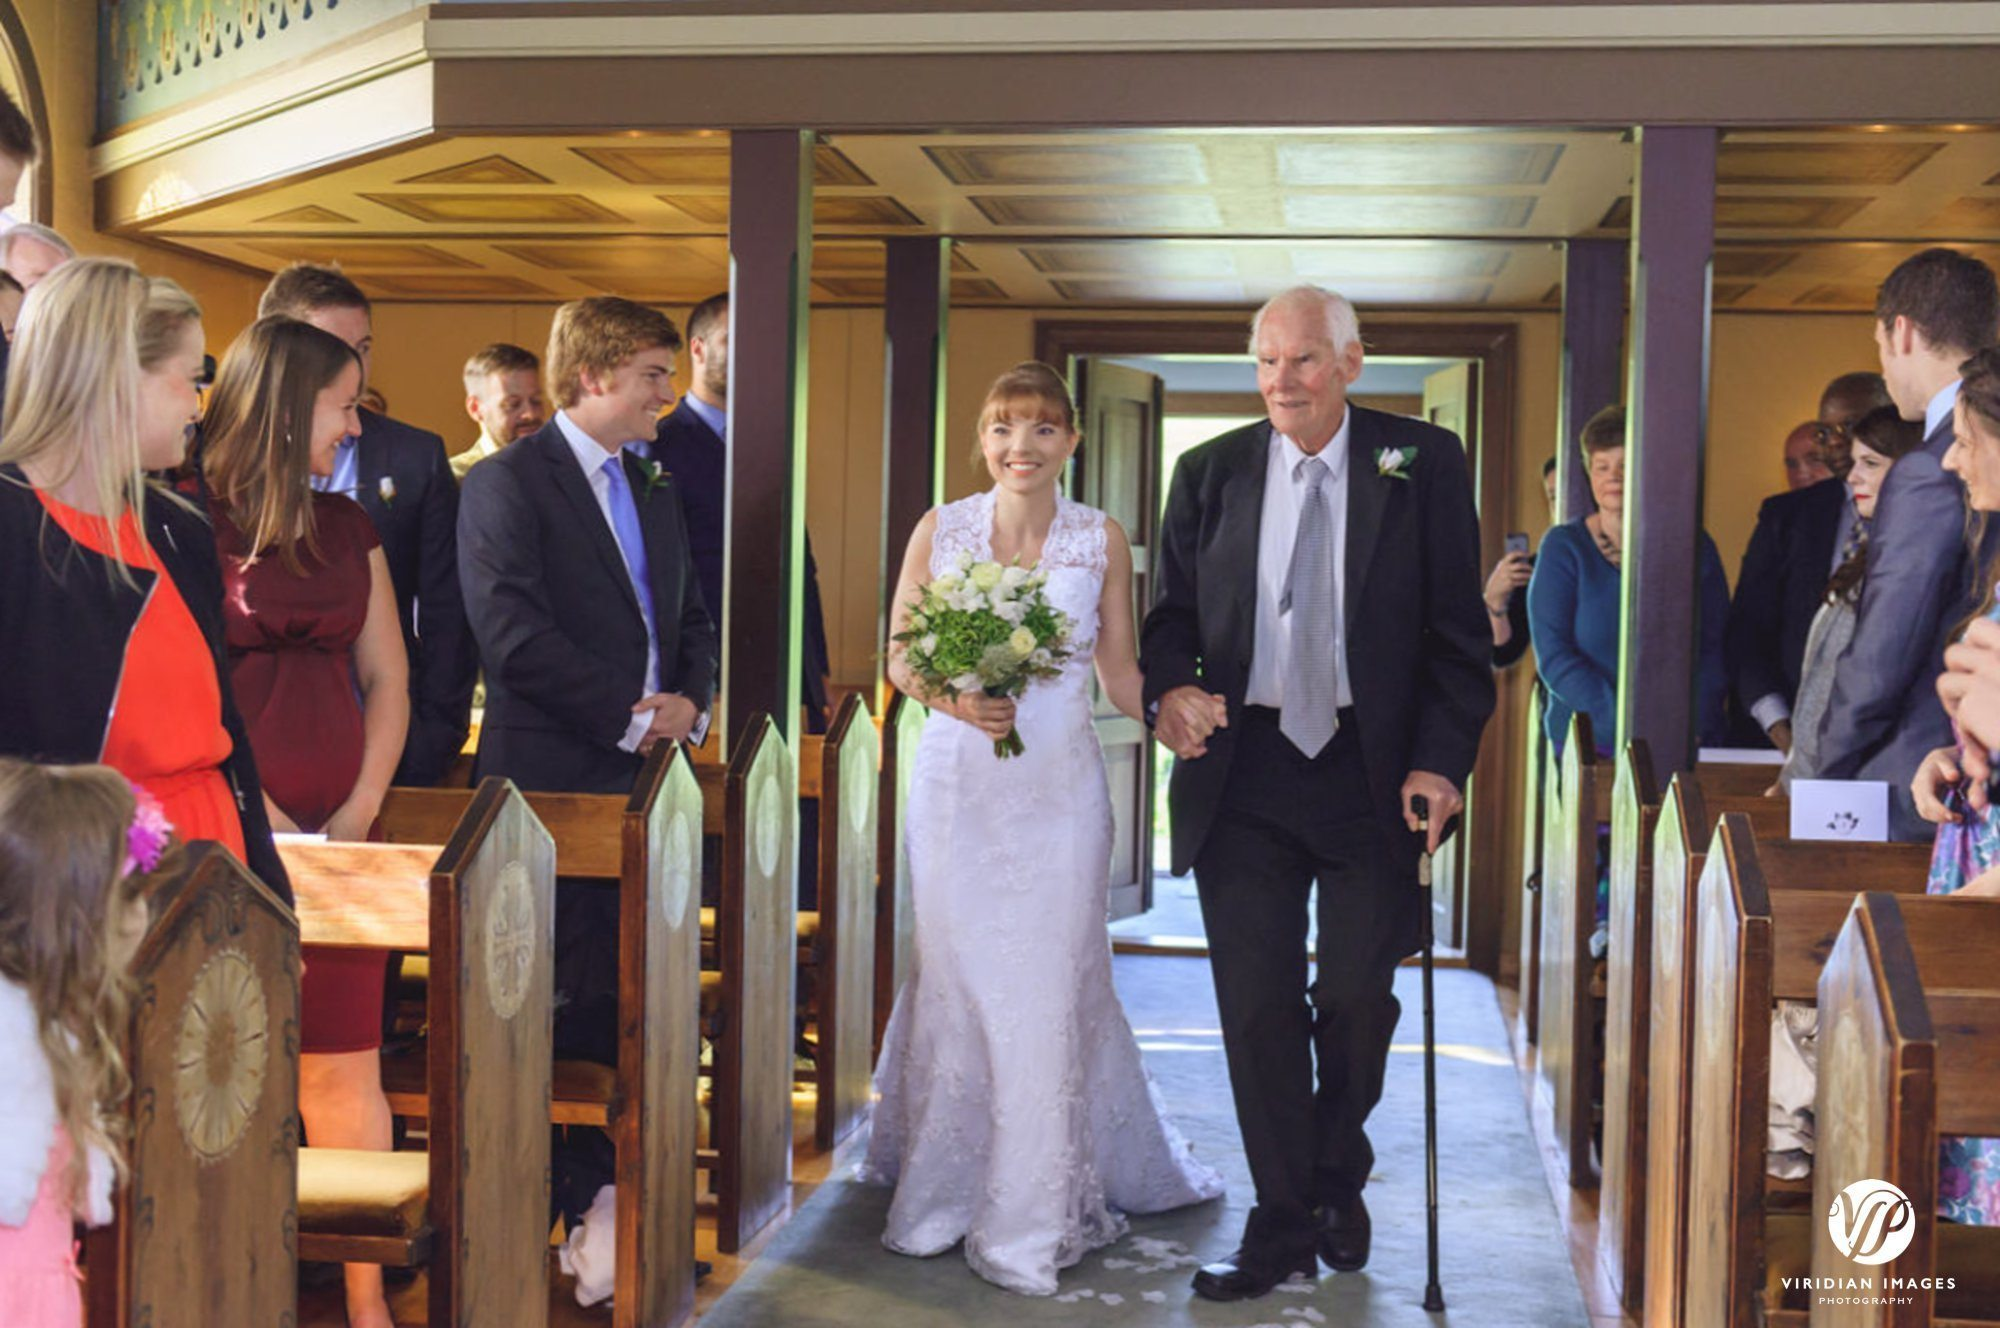 Bride wedding processional in Oddakirkja church Iceland